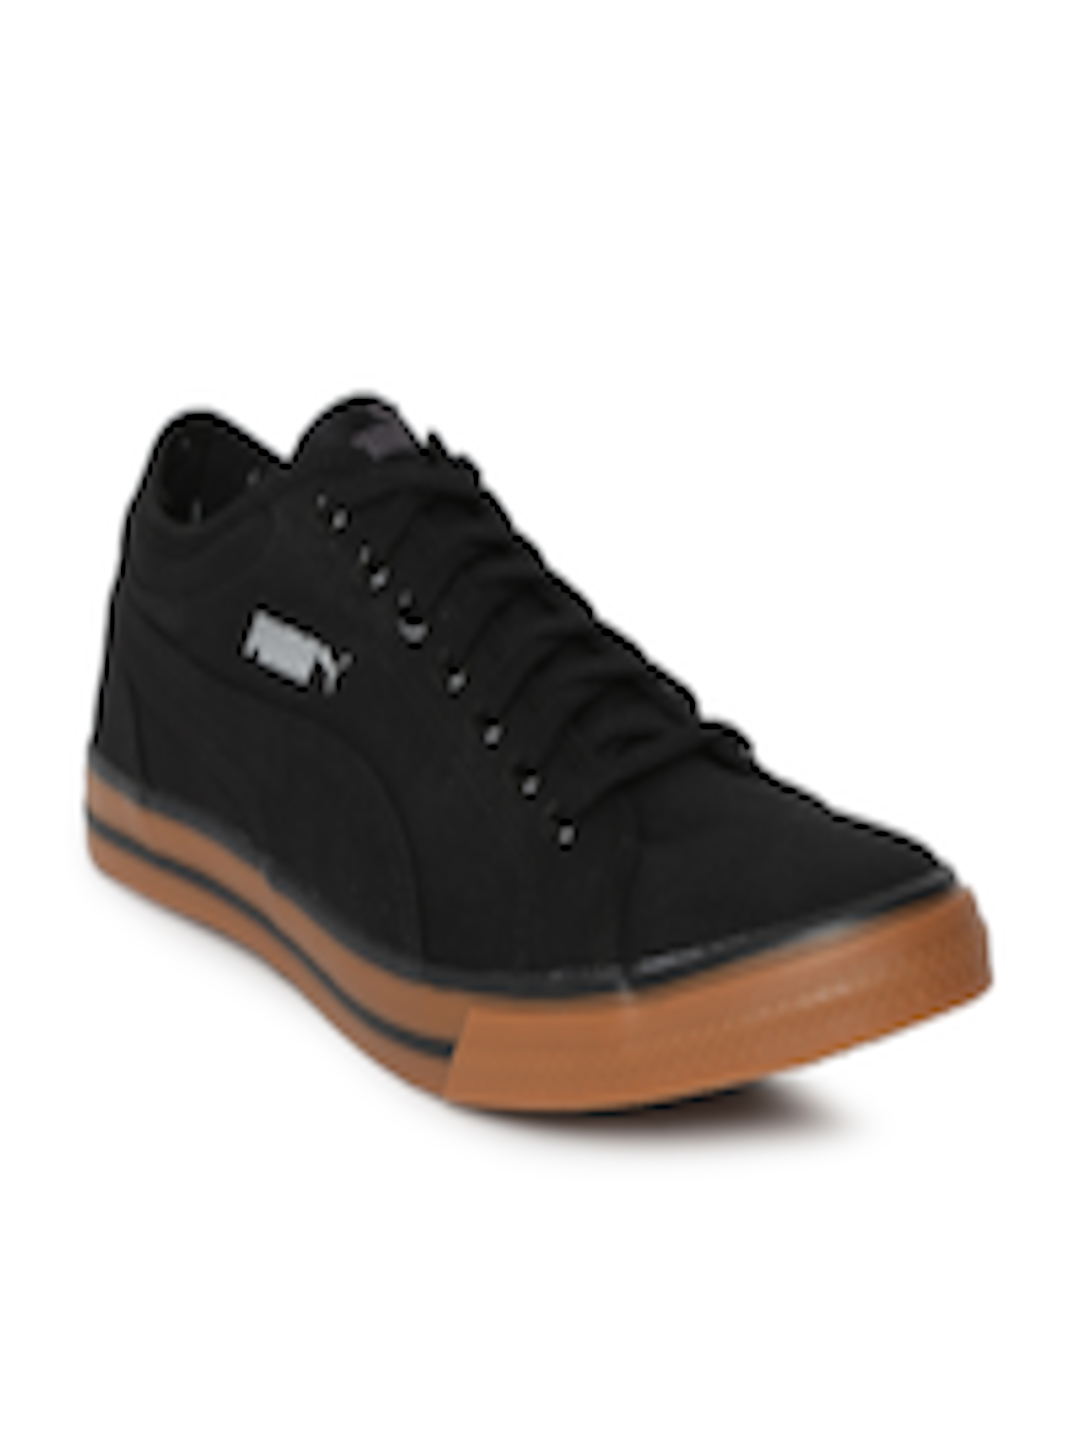 Buy Puma Unisex Black Yale Gum Solid IDP Sneakers - Casual Shoes for ... 1101536fe